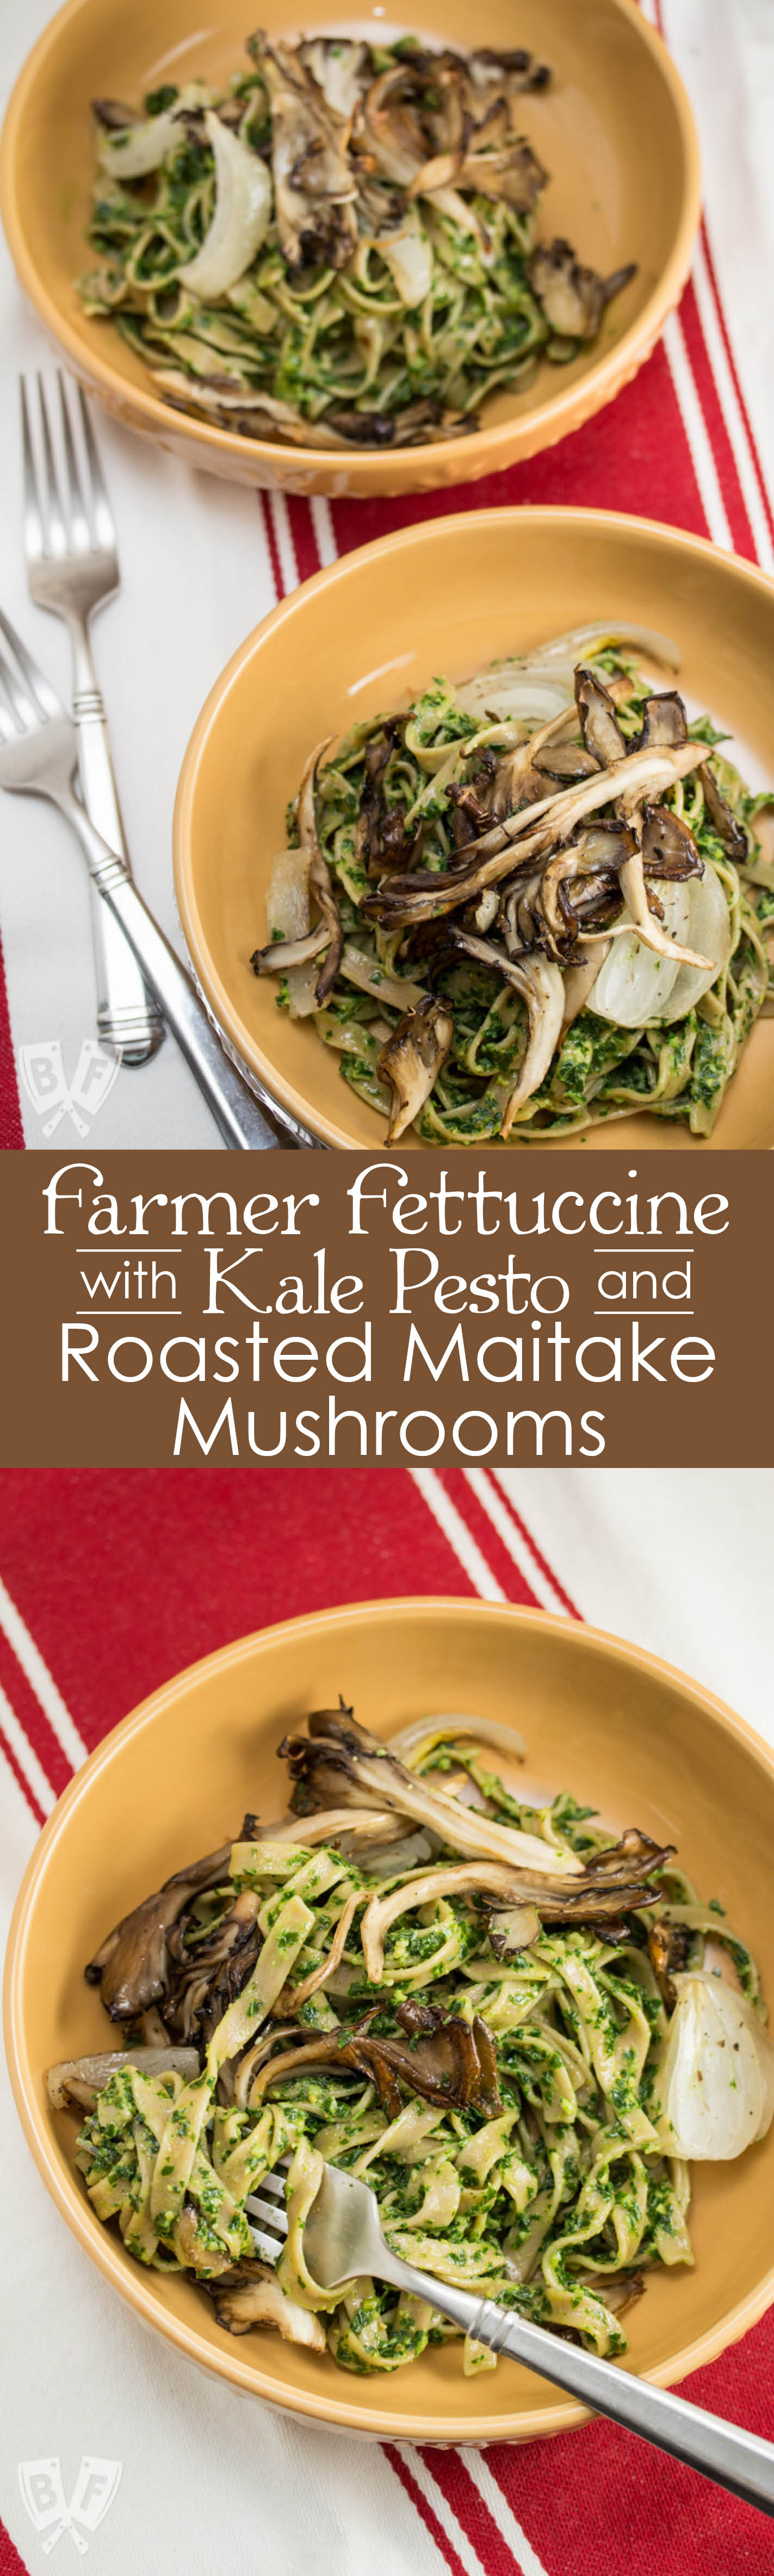 Farmer Fettuccine with Kale Pesto + Roasted Maitake Mushrooms: Celebrate spring's bounty with this gorgeously green bowl of farm fresh, vegan comfort food! #BigFlavorsFromTheFarm